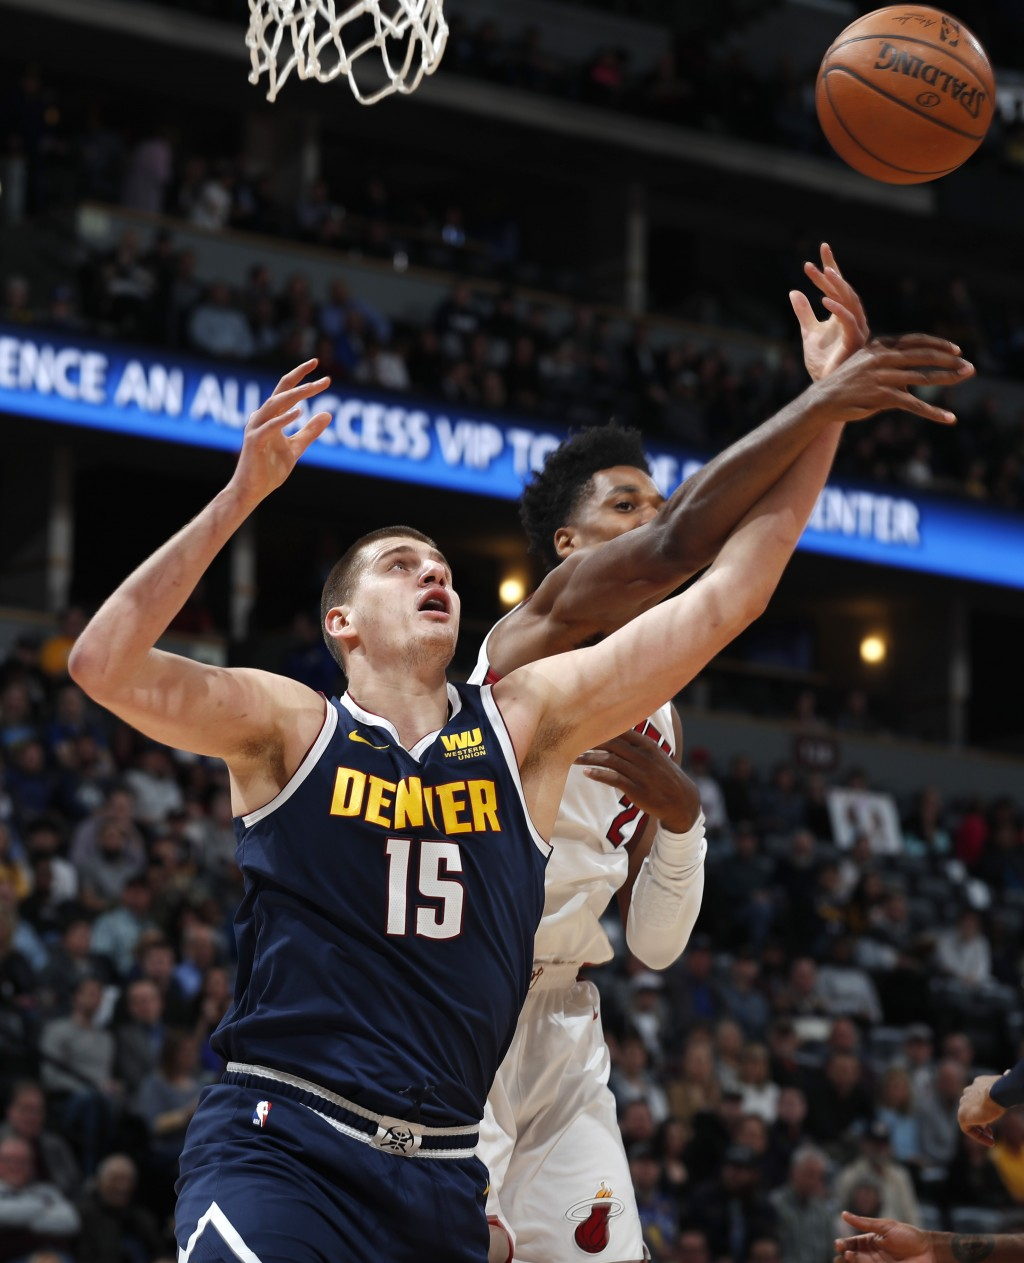 Denver Nuggets center Nikola Jokic, left, fights for control of a rebound with Miami Heat center Hassan Whiteside, right, in the first half of an NBA